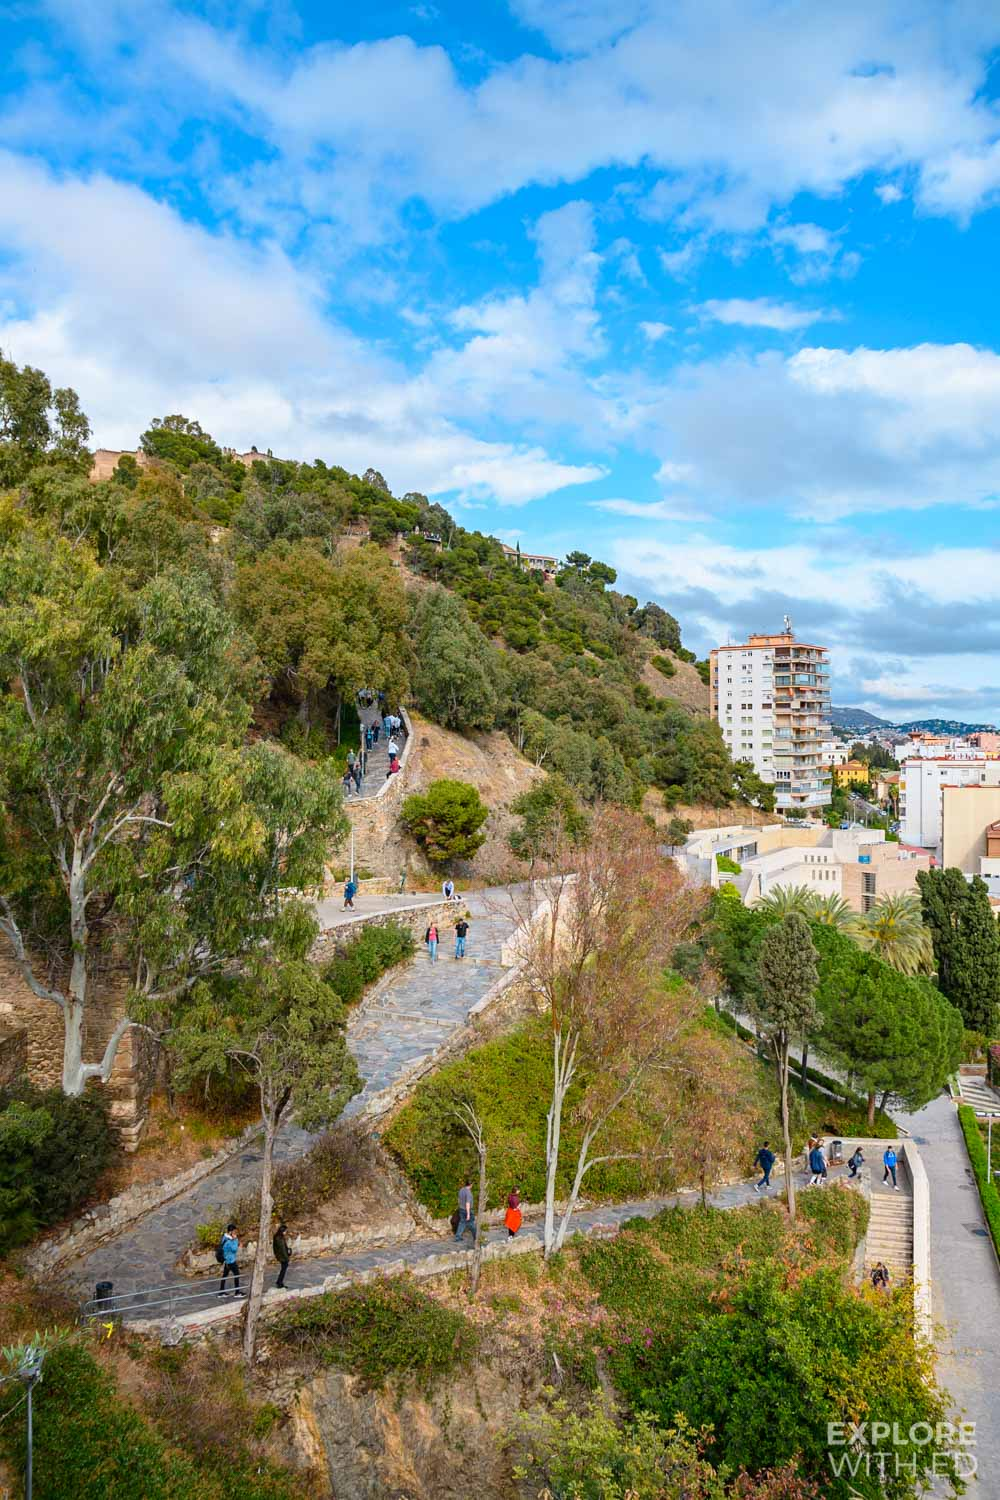 The uphill walk to Gibralfaro Castle in Malaga